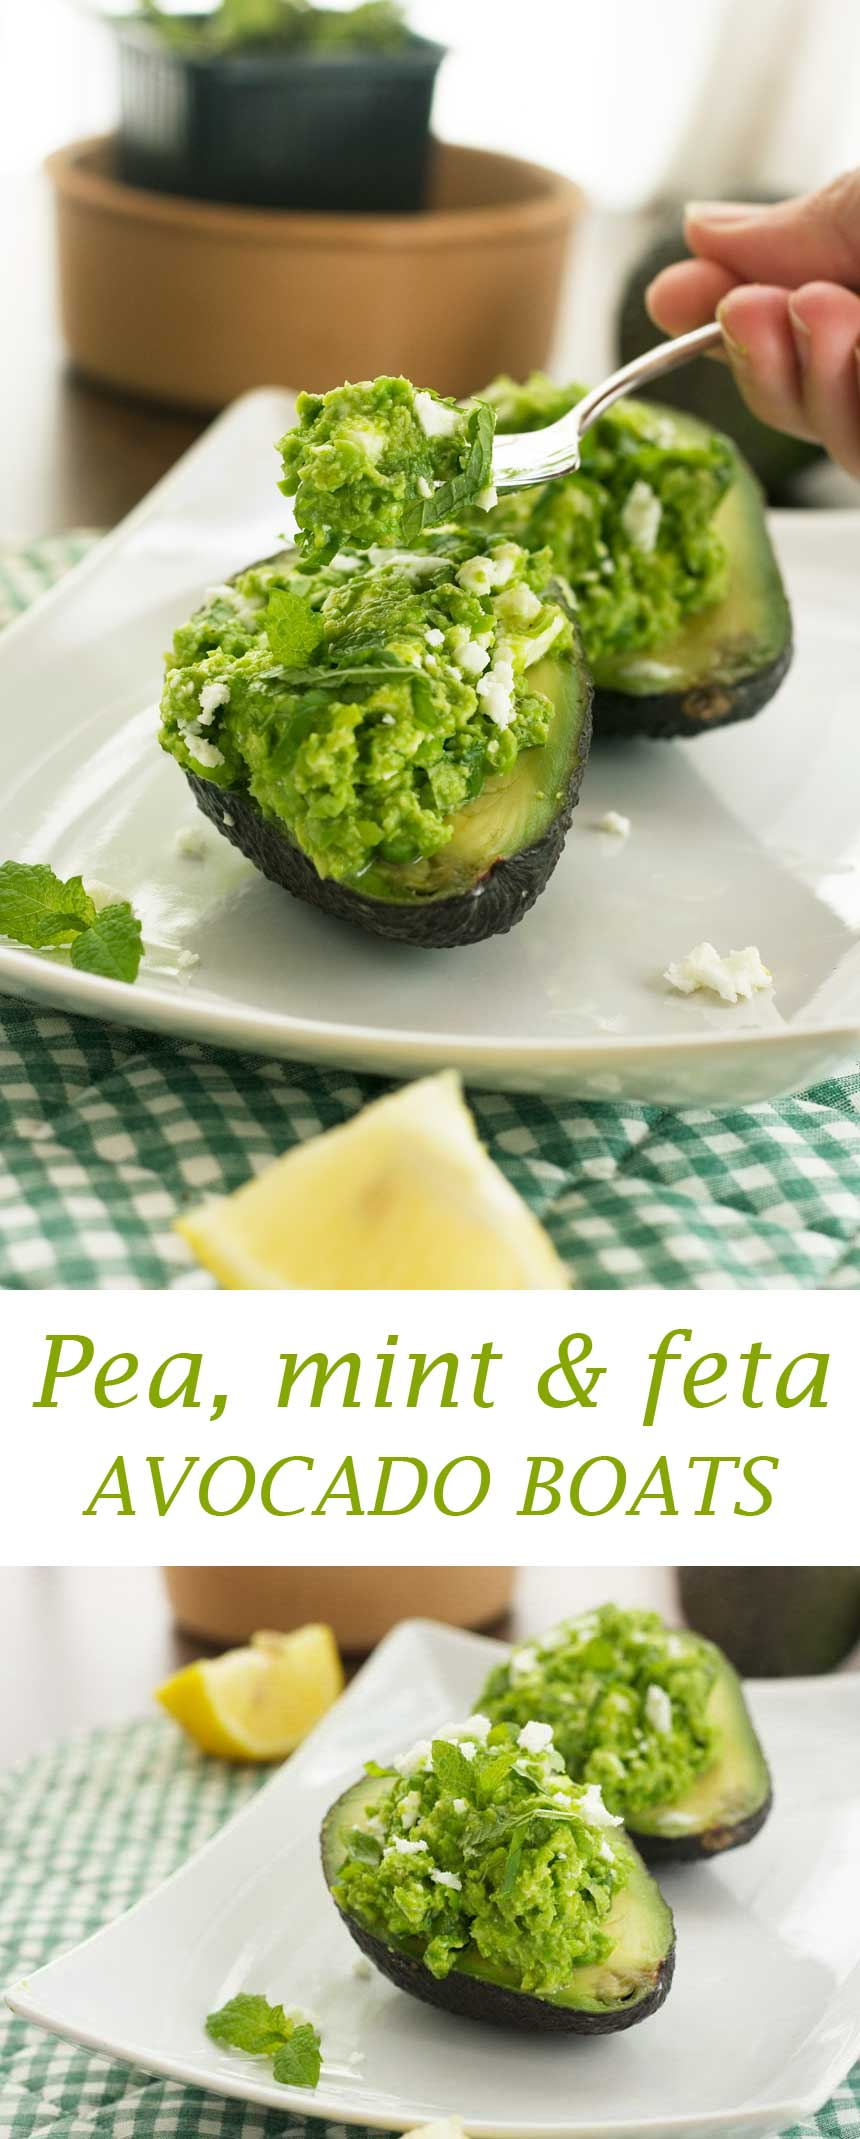 Pea, mint & feta avocado boats